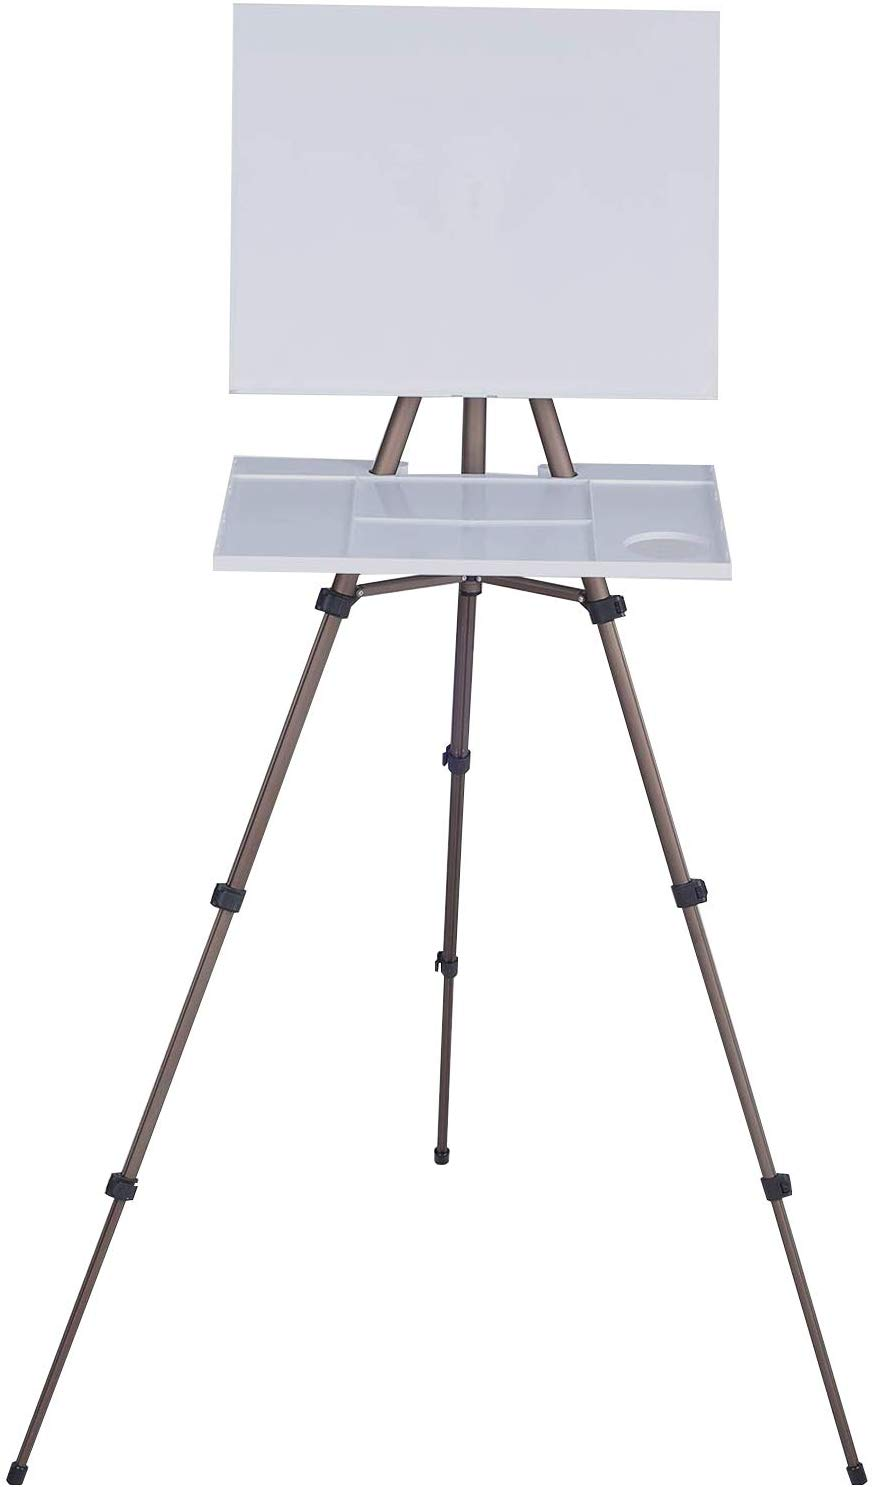 MEEDEN Artist Watercolor Field Easel Portable Easel, Lightweight Field Easel For Watercolors, Sturdy Tripod For Painting